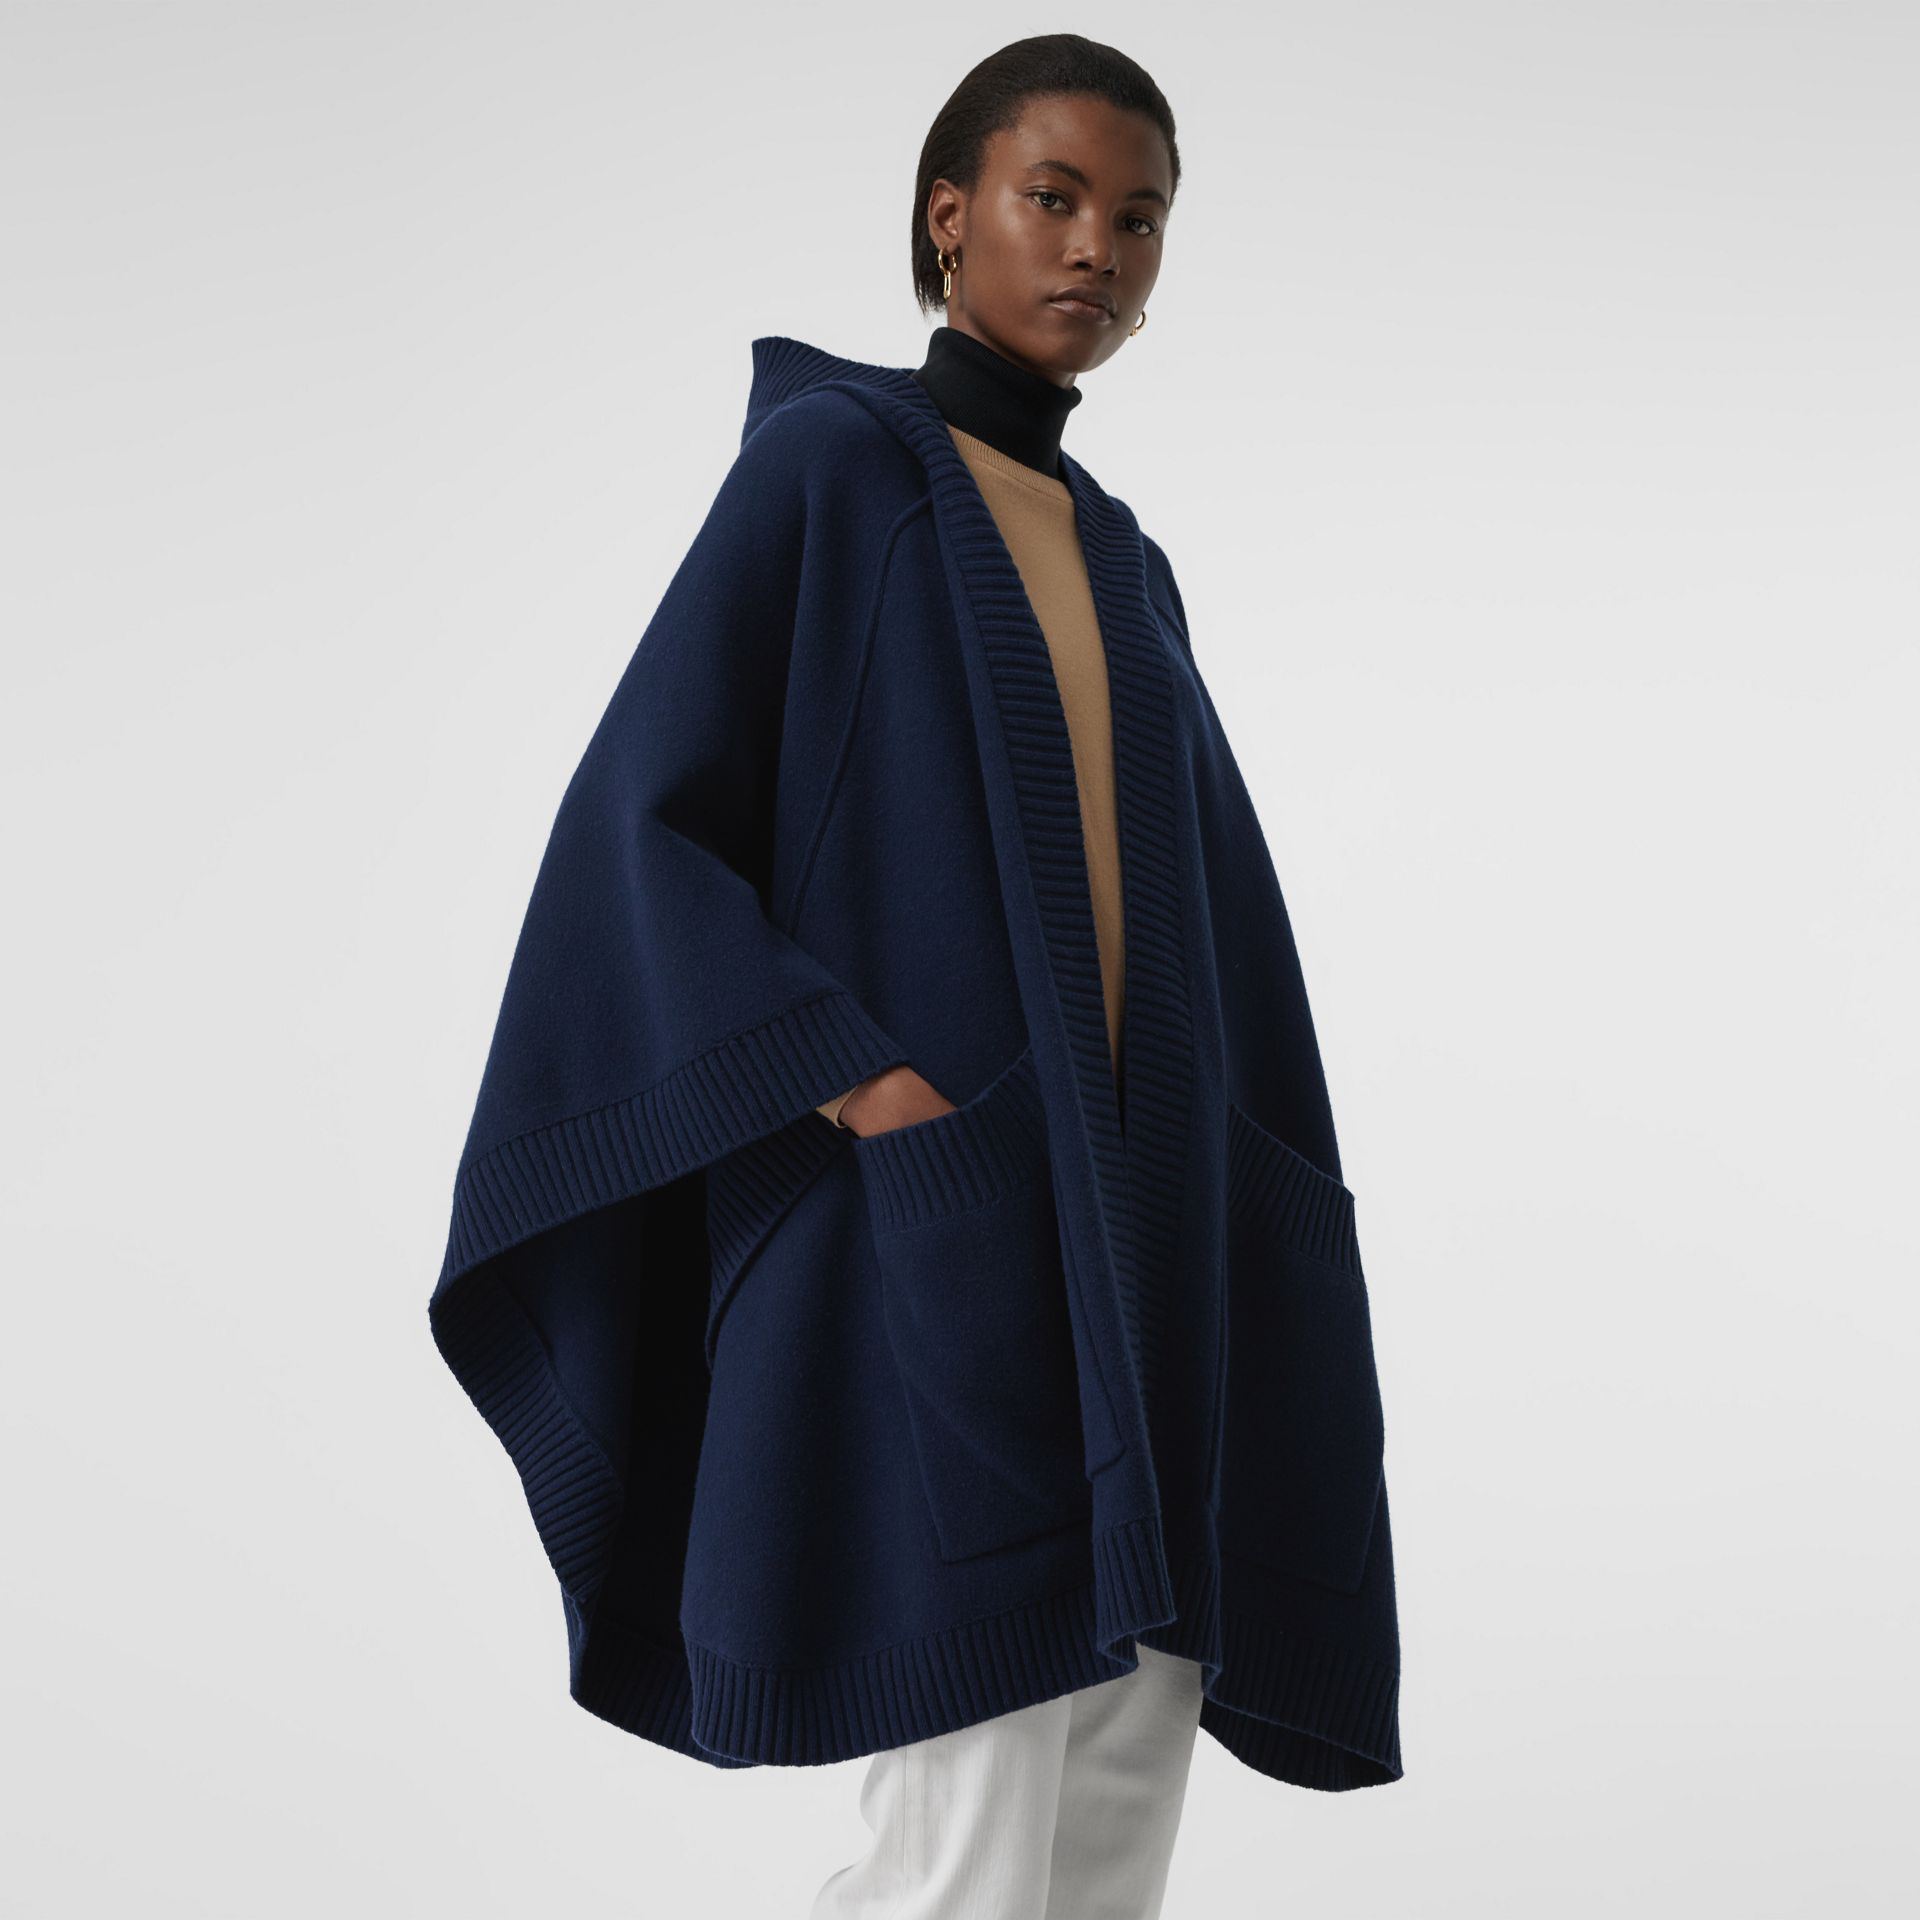 Crest Jacquard Wool Blend Hooded Cape in Navy - Women | Burberry - gallery image 2